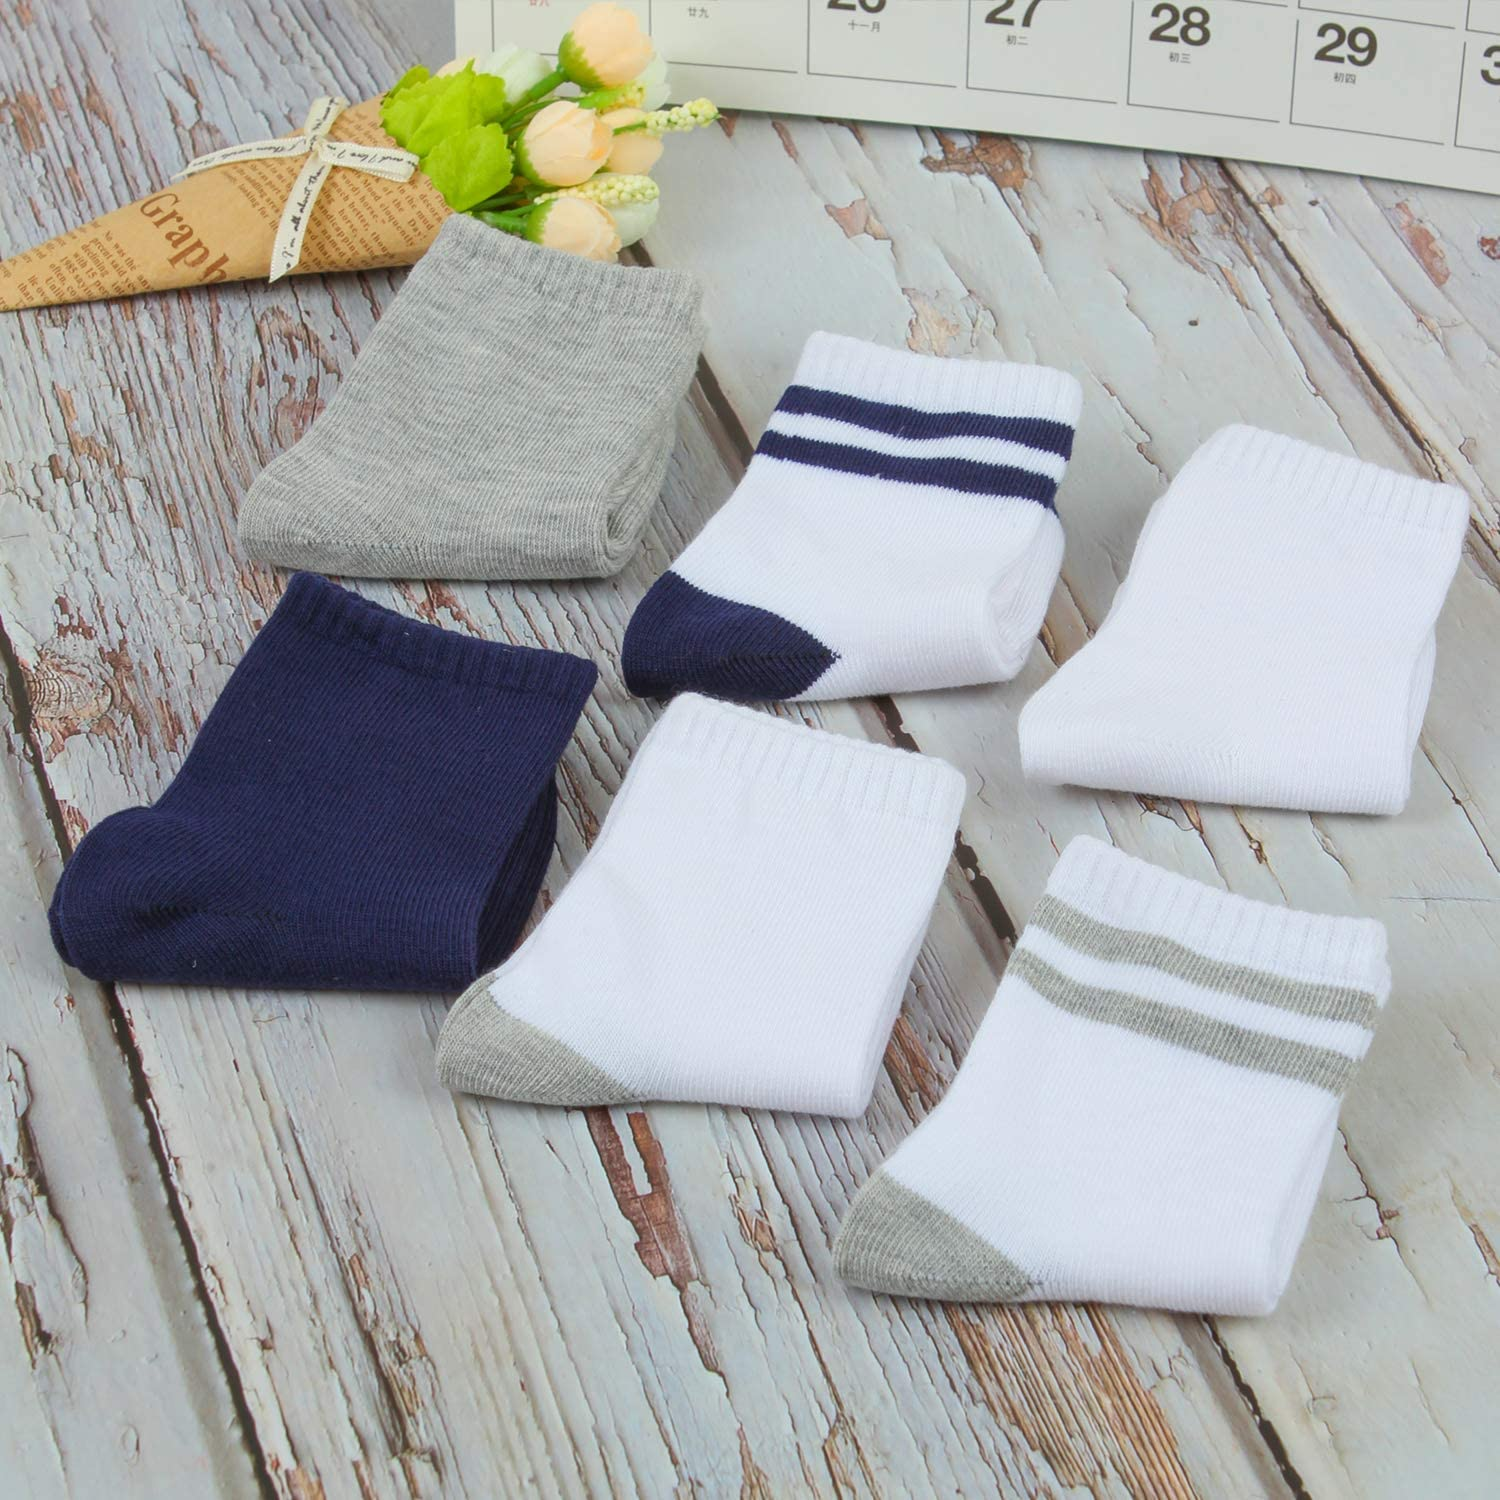 Cooraby 12 Pairs Unisex Toddler Socks Classic Non-Skid Crew Socks, Assorted Colors